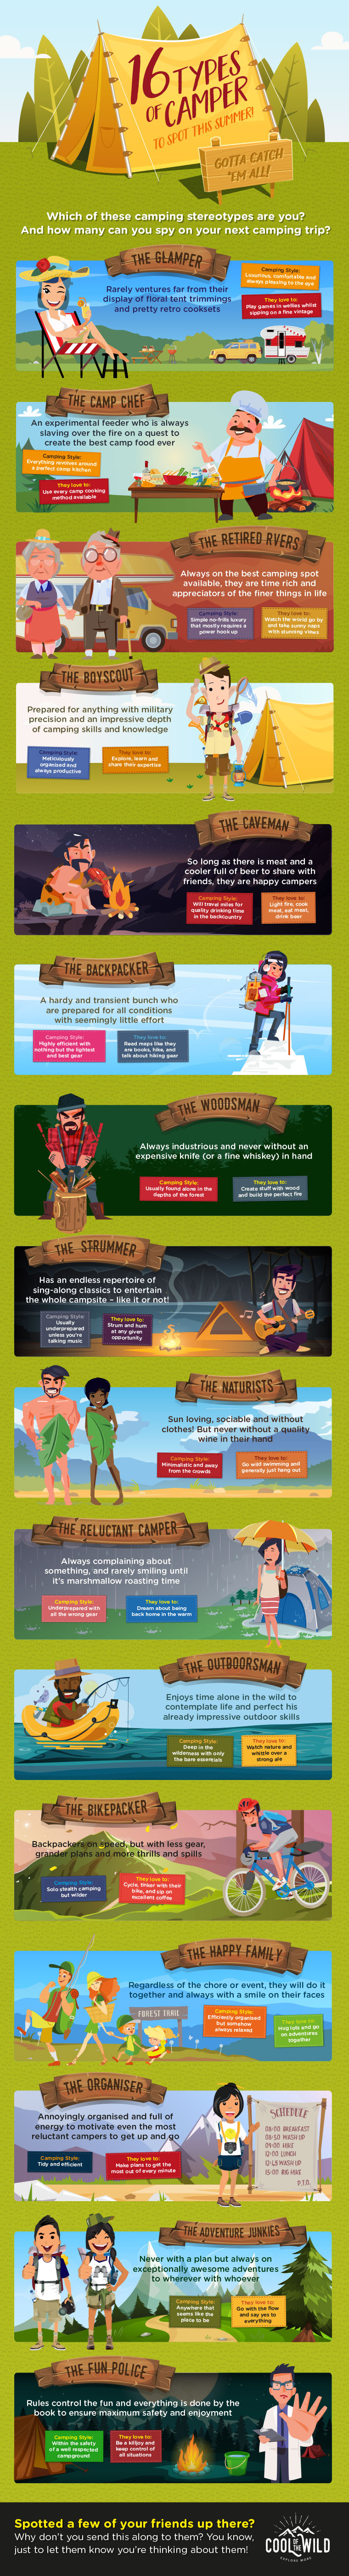 16 Types of Camper #Infographic